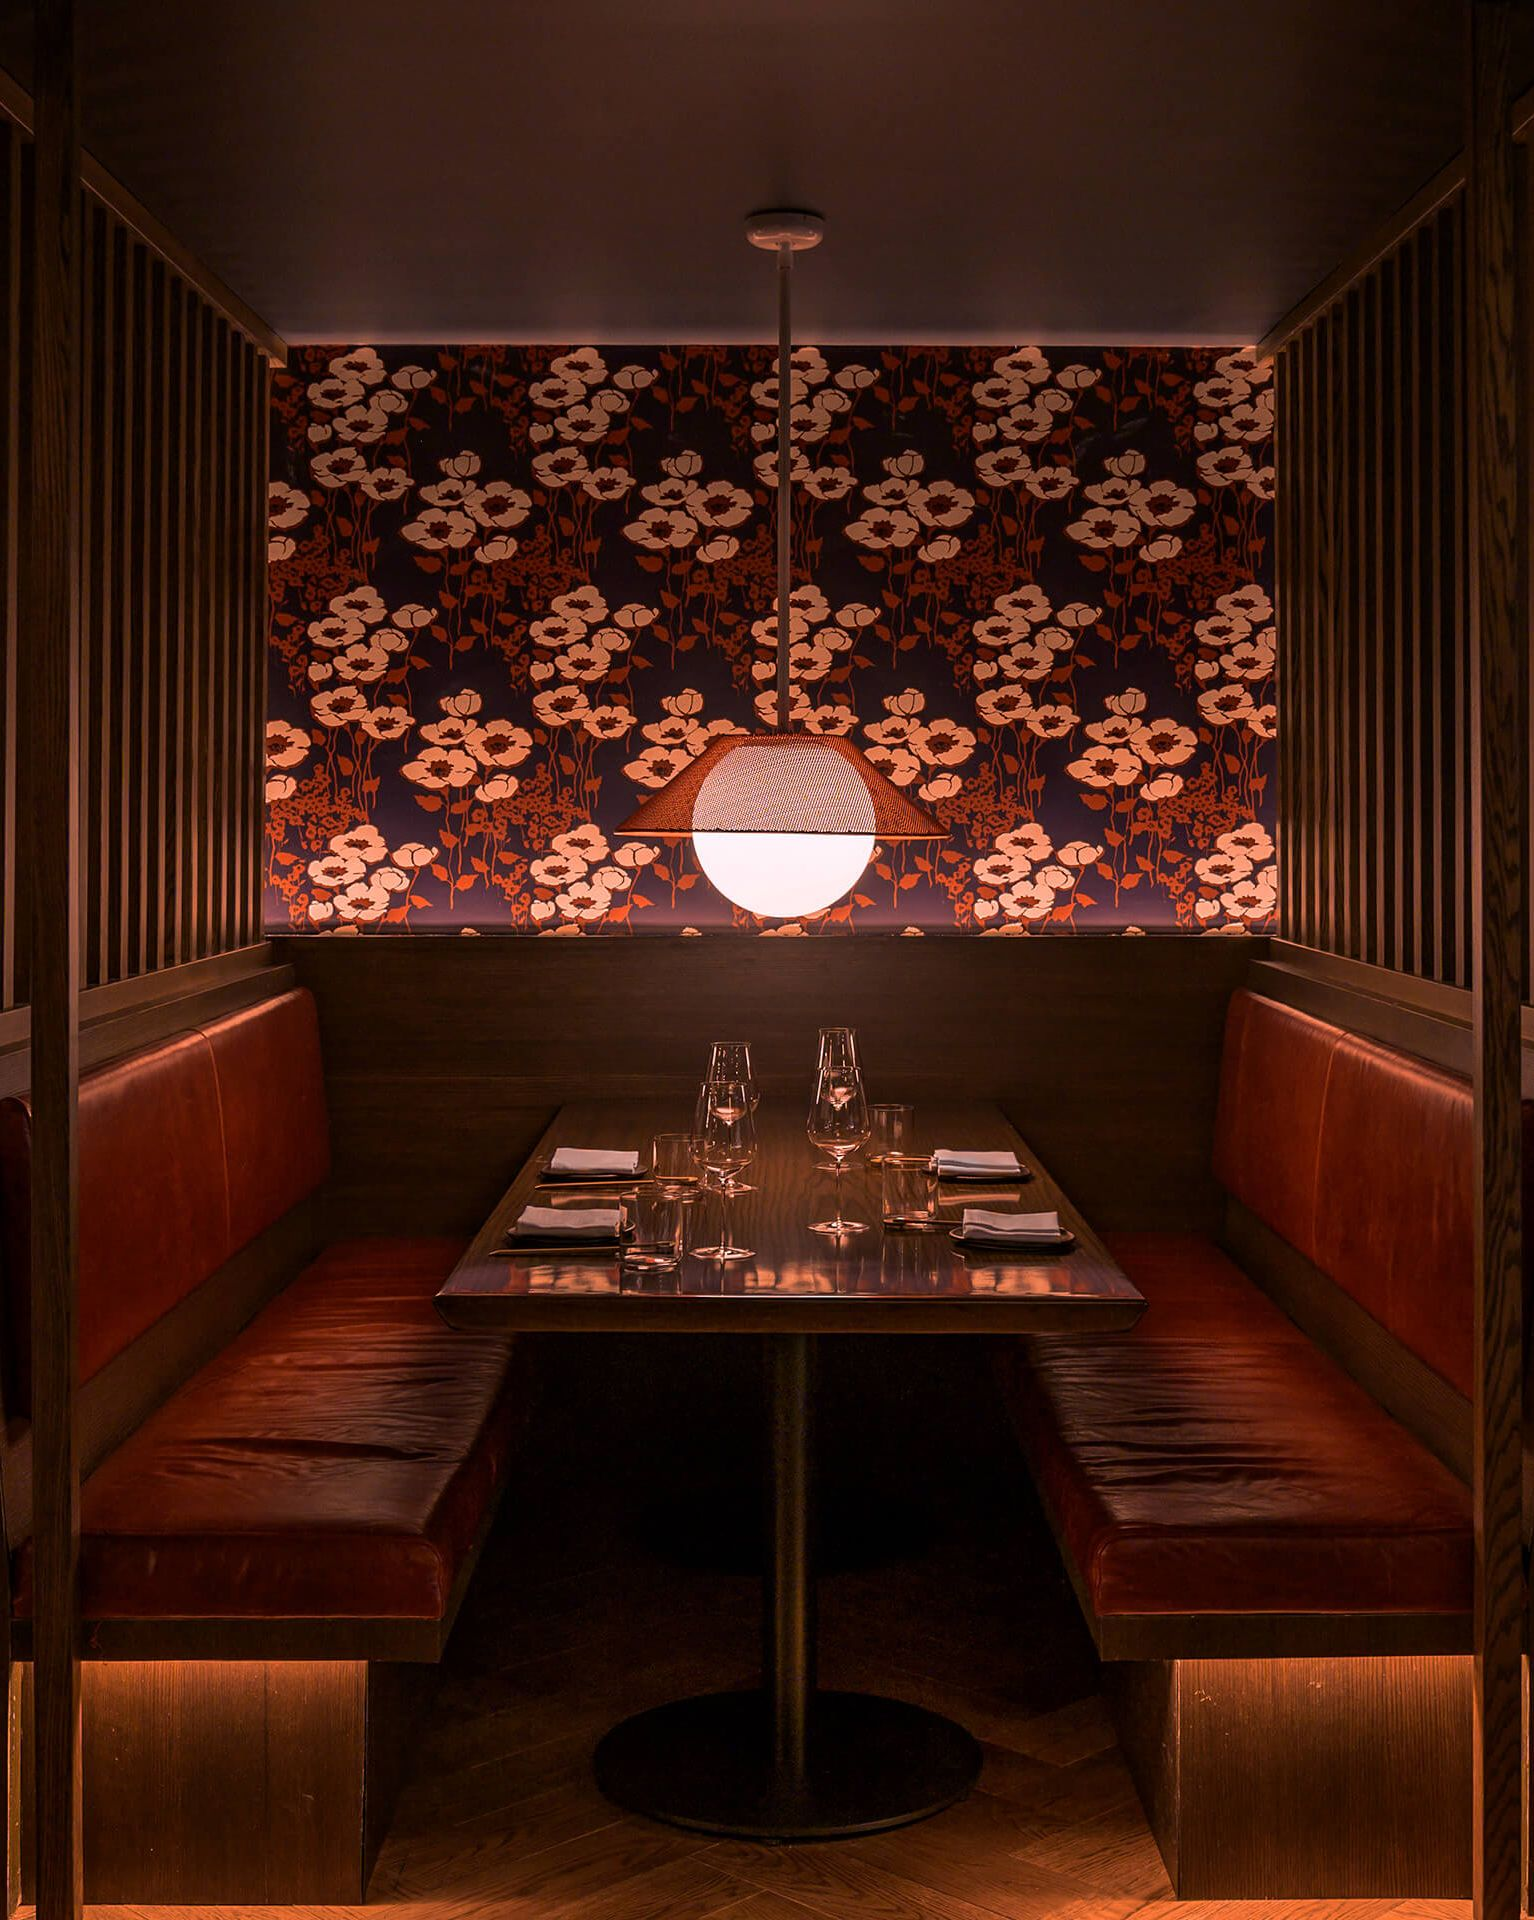 RBW Akoya Pendant in a hospitality restaurant interior design project